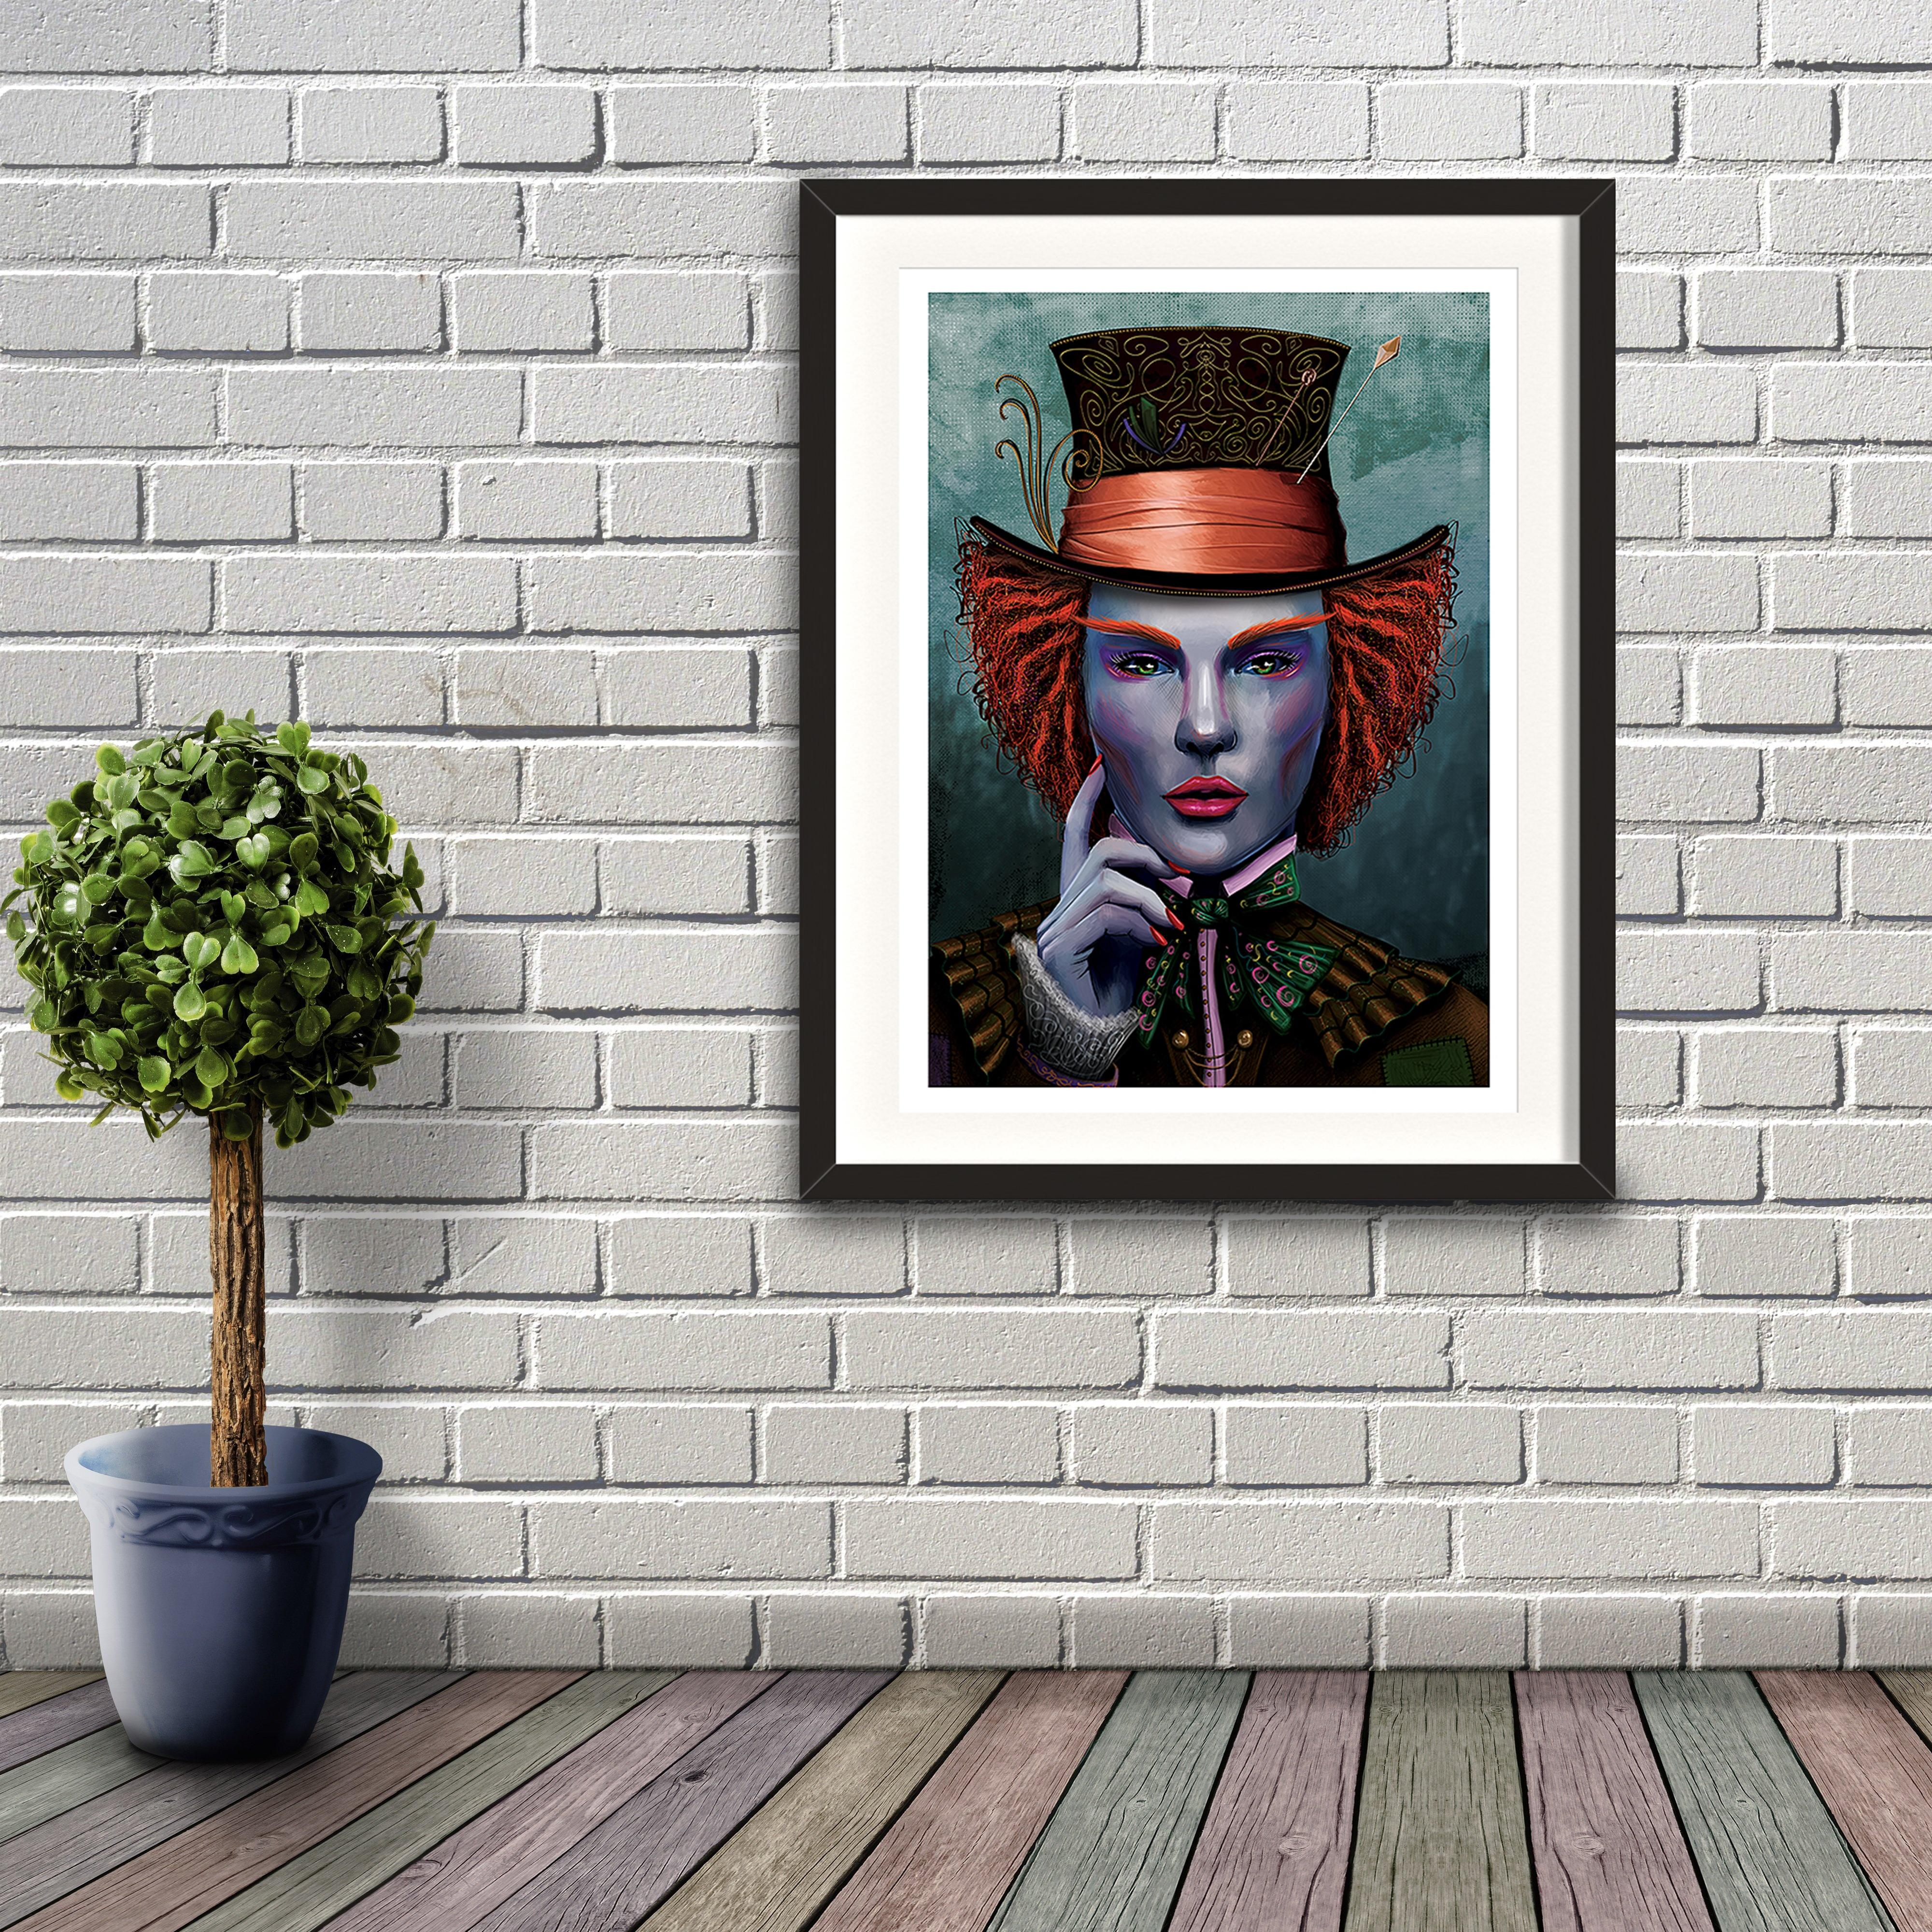 A digital painting called I Am by Lily Bourne showing face on portrait based on the character of The Mad Hatter with colourful hat and makeup. Artwork shown in a black frame on a brick wall.